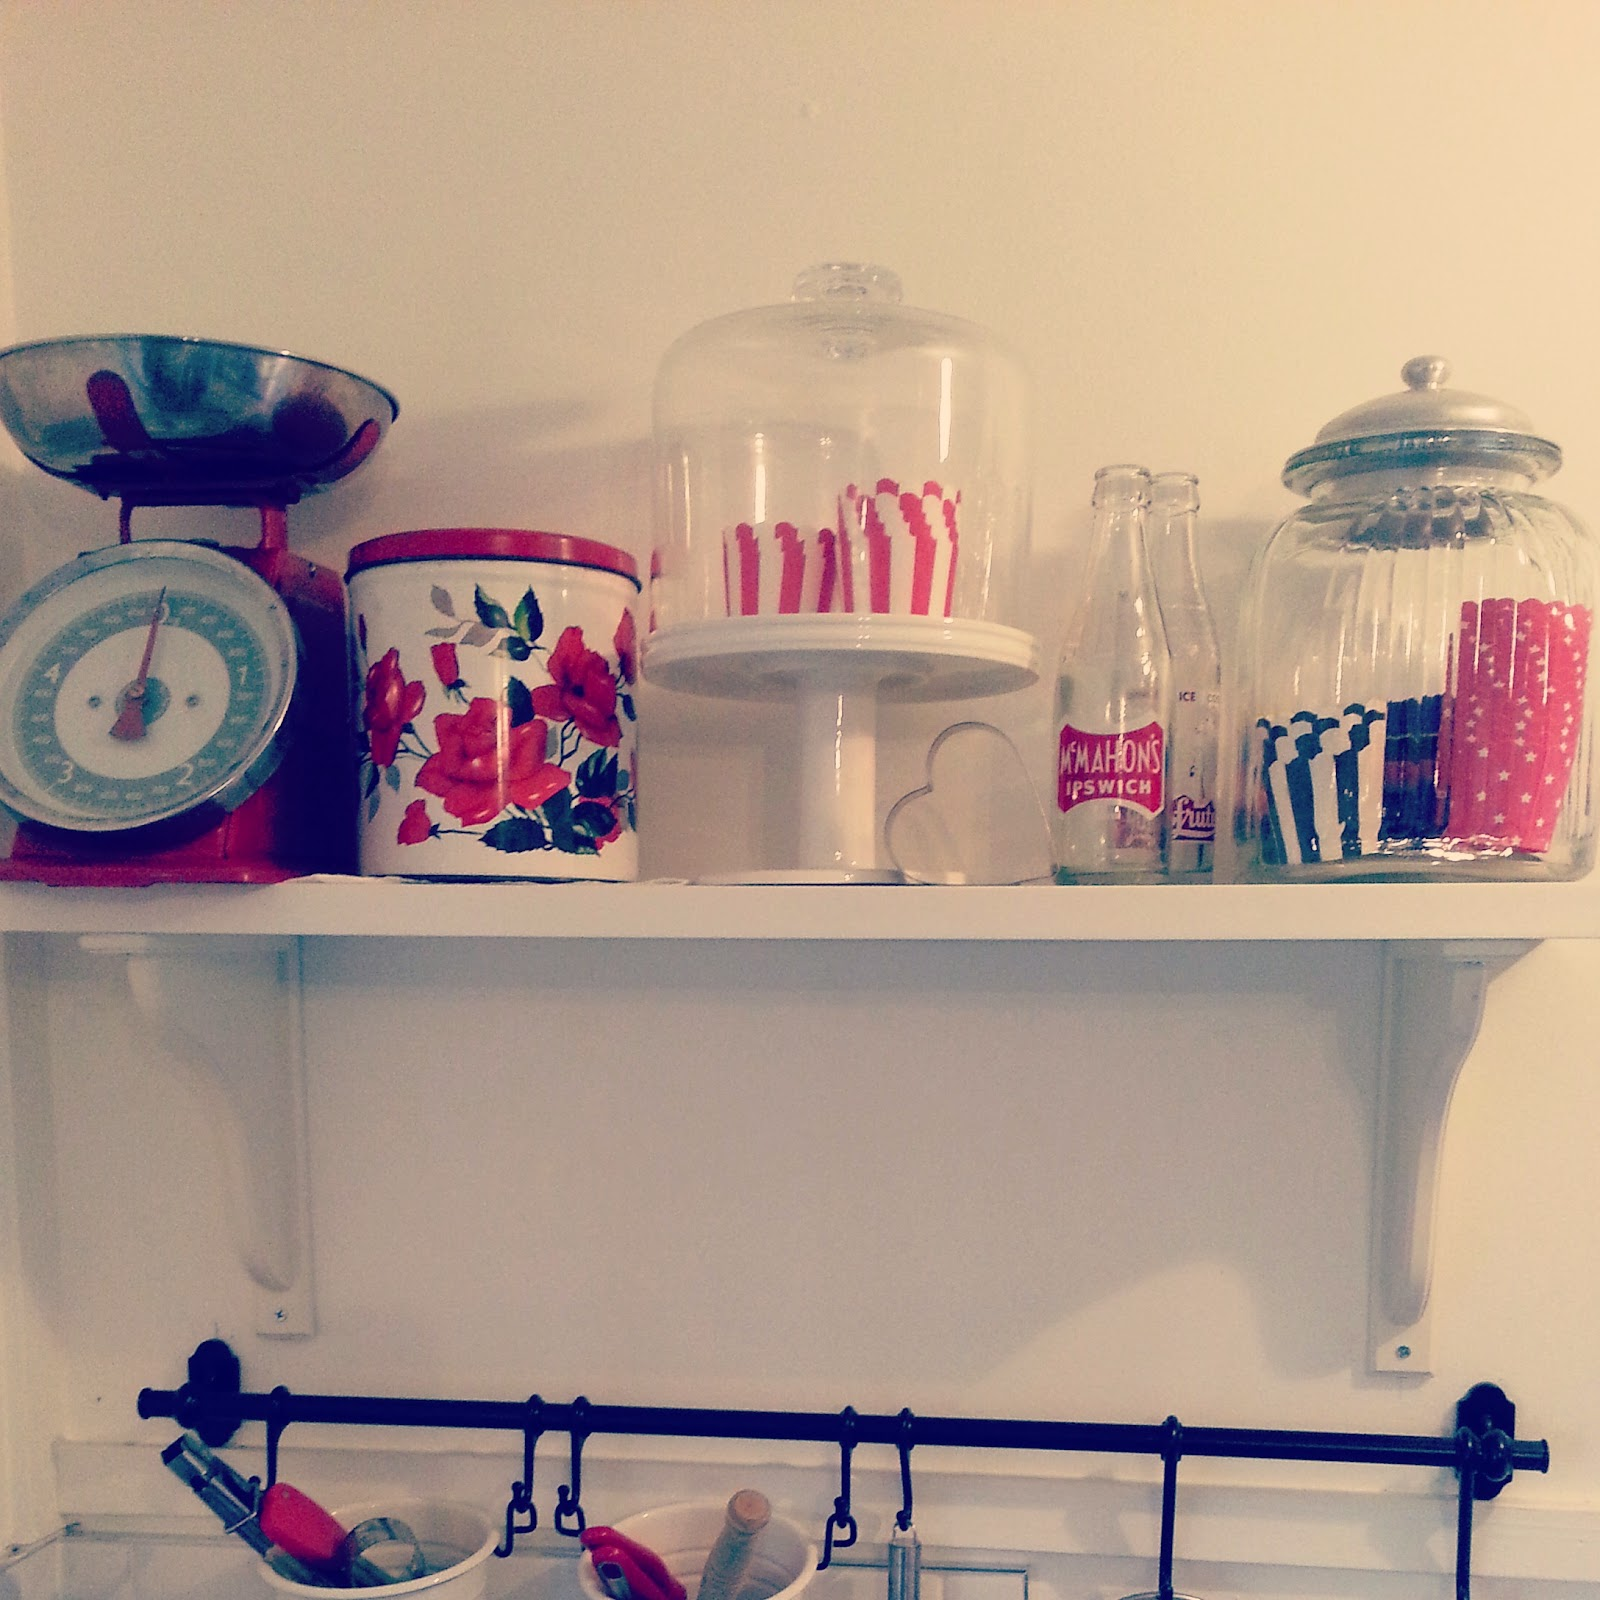 kitchen vintage retro kitchenalia scales cupcake pans cake stand on shelf white and red